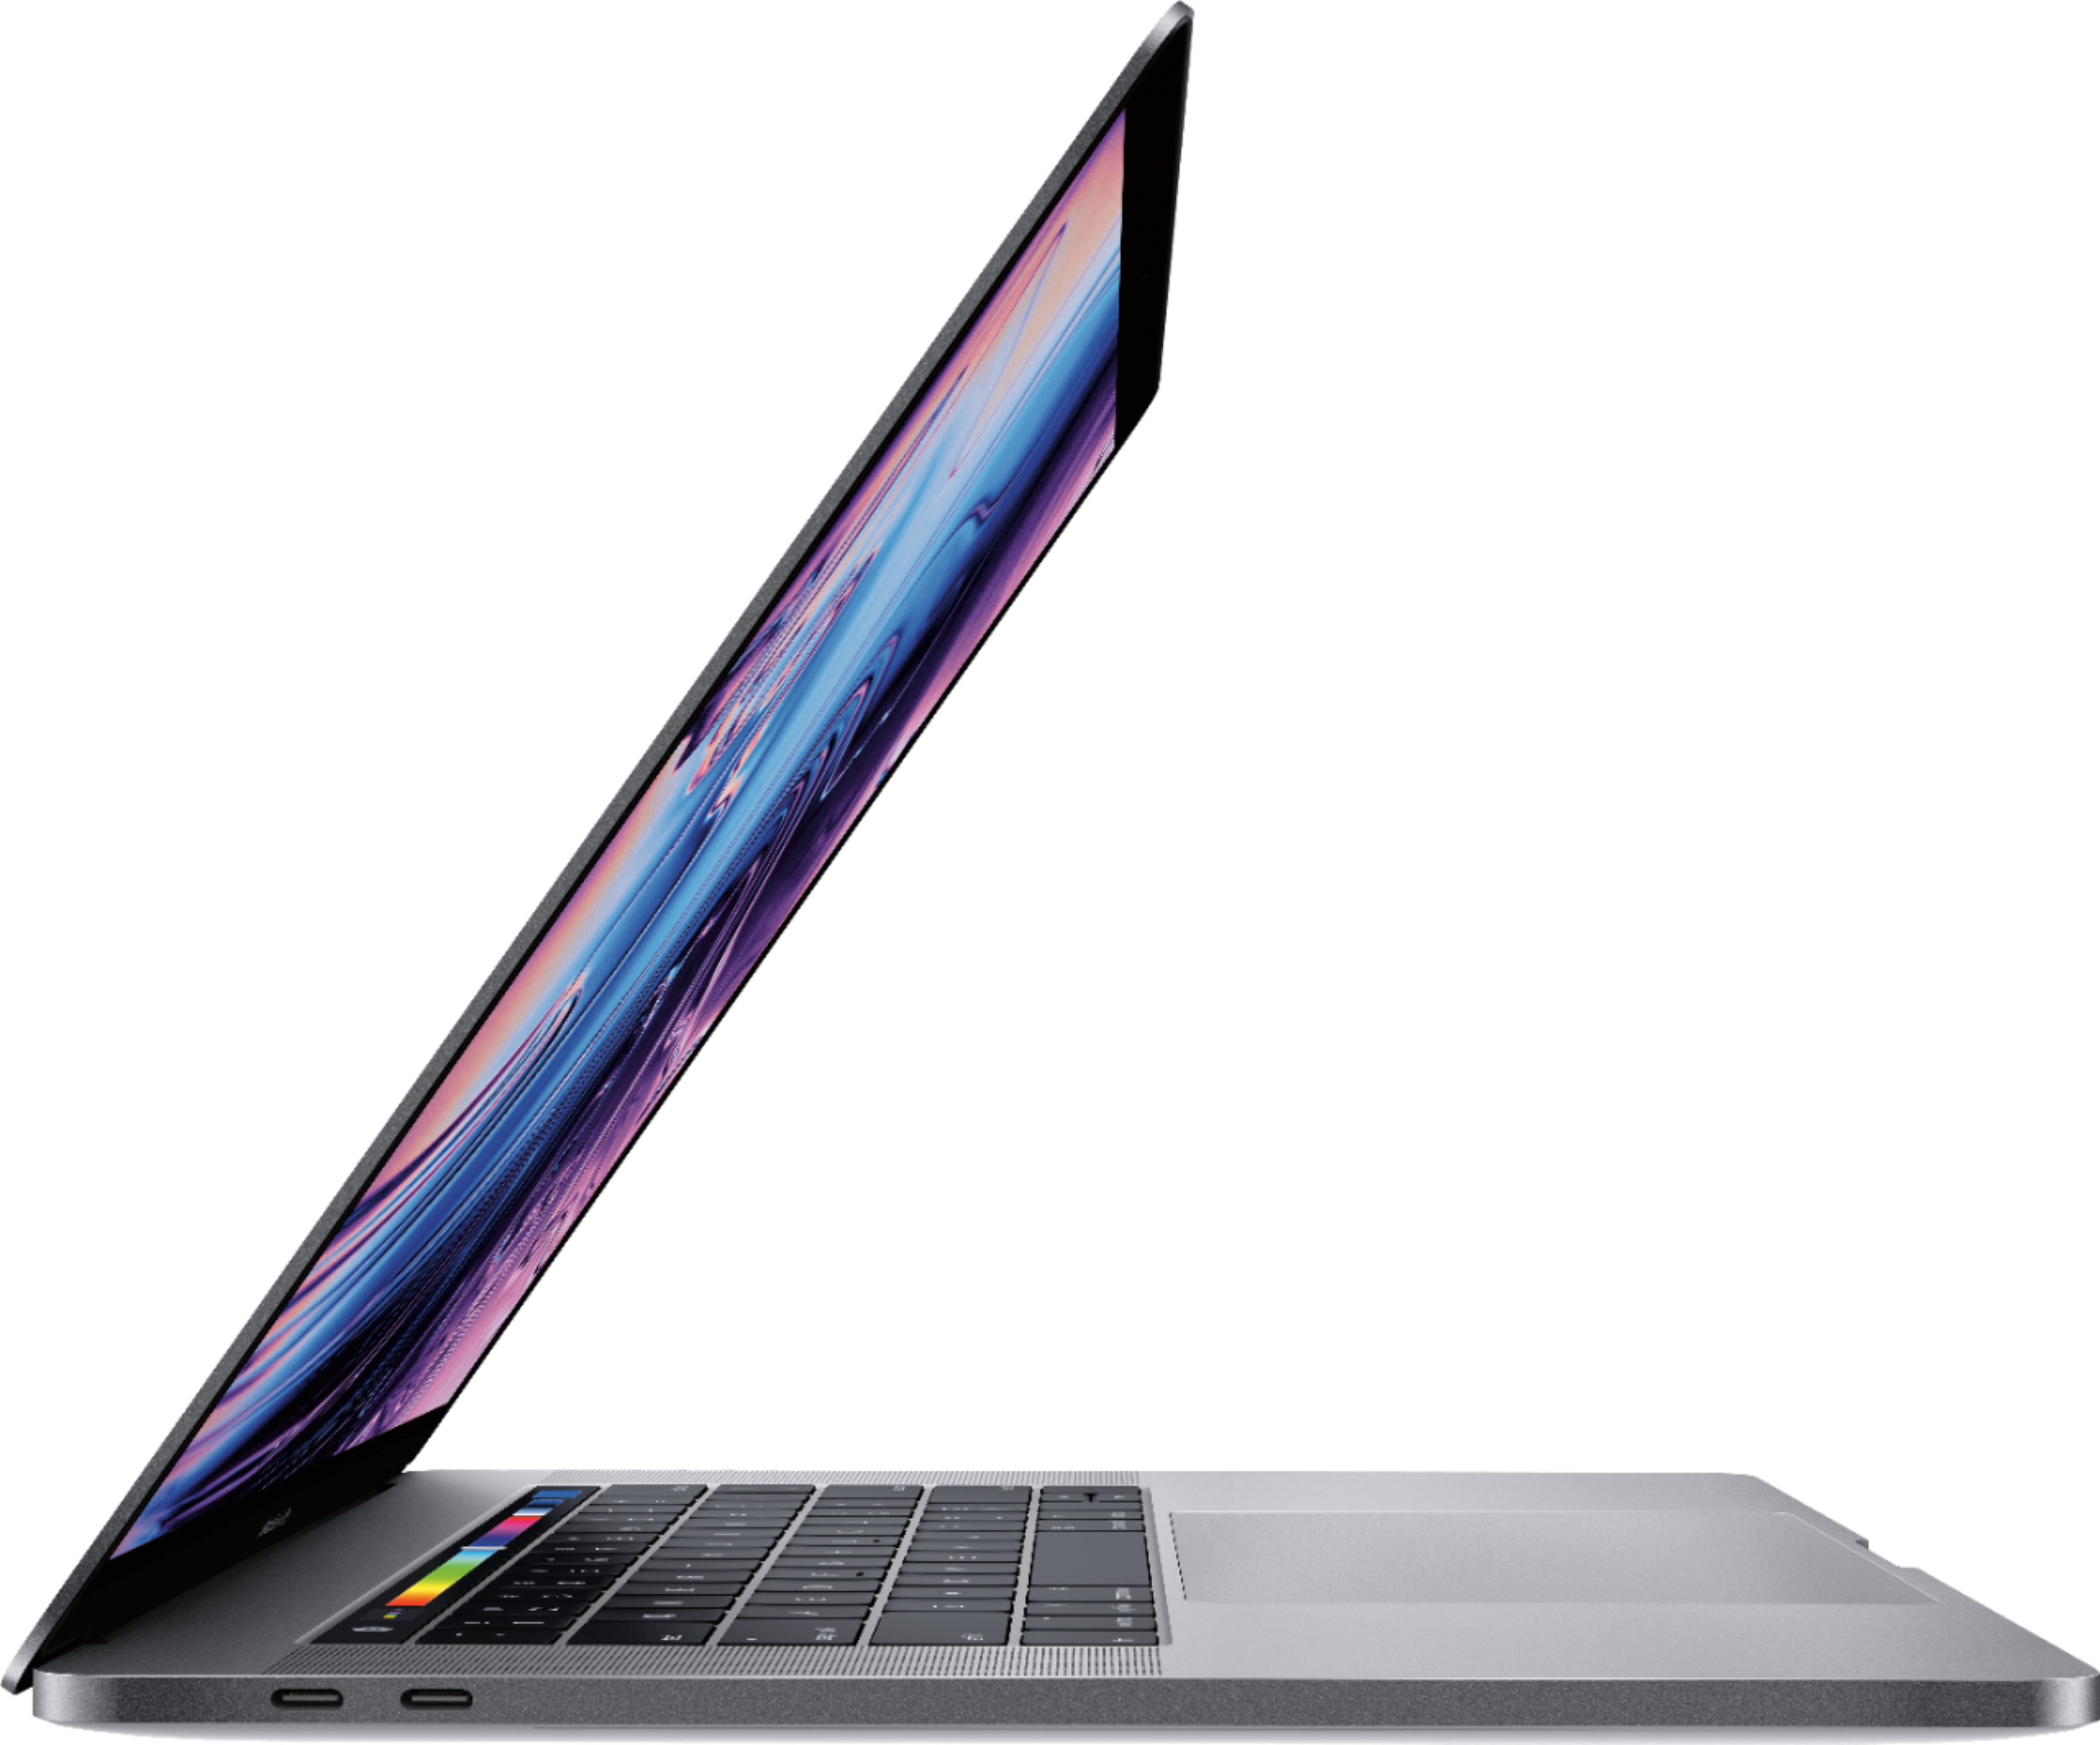 "Alt View Zoom 11. Apple - MacBook Pro 15.4"" Display with Touch Bar - Intel Core i9 - 32GB Memory - AMD Radeon Pro Vega 20 - 1TB SSD - Space Gray."